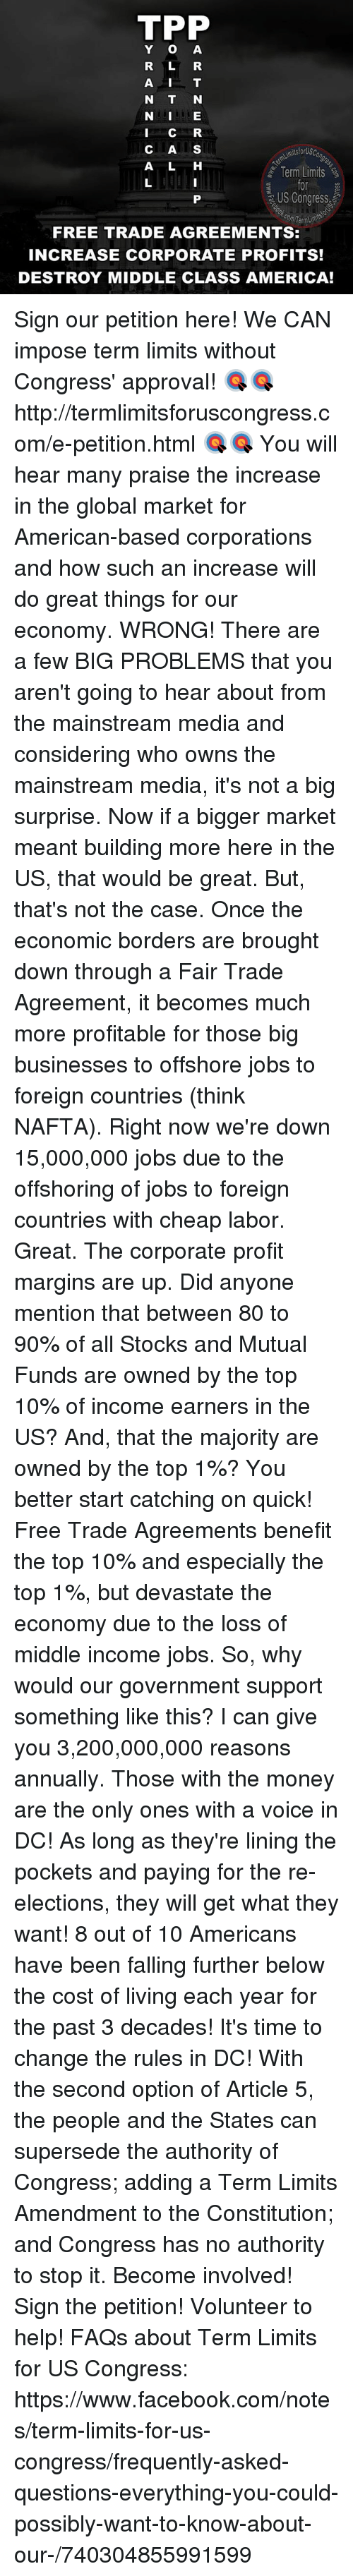 north american free trade agreement as an assurance that it would give more jobs